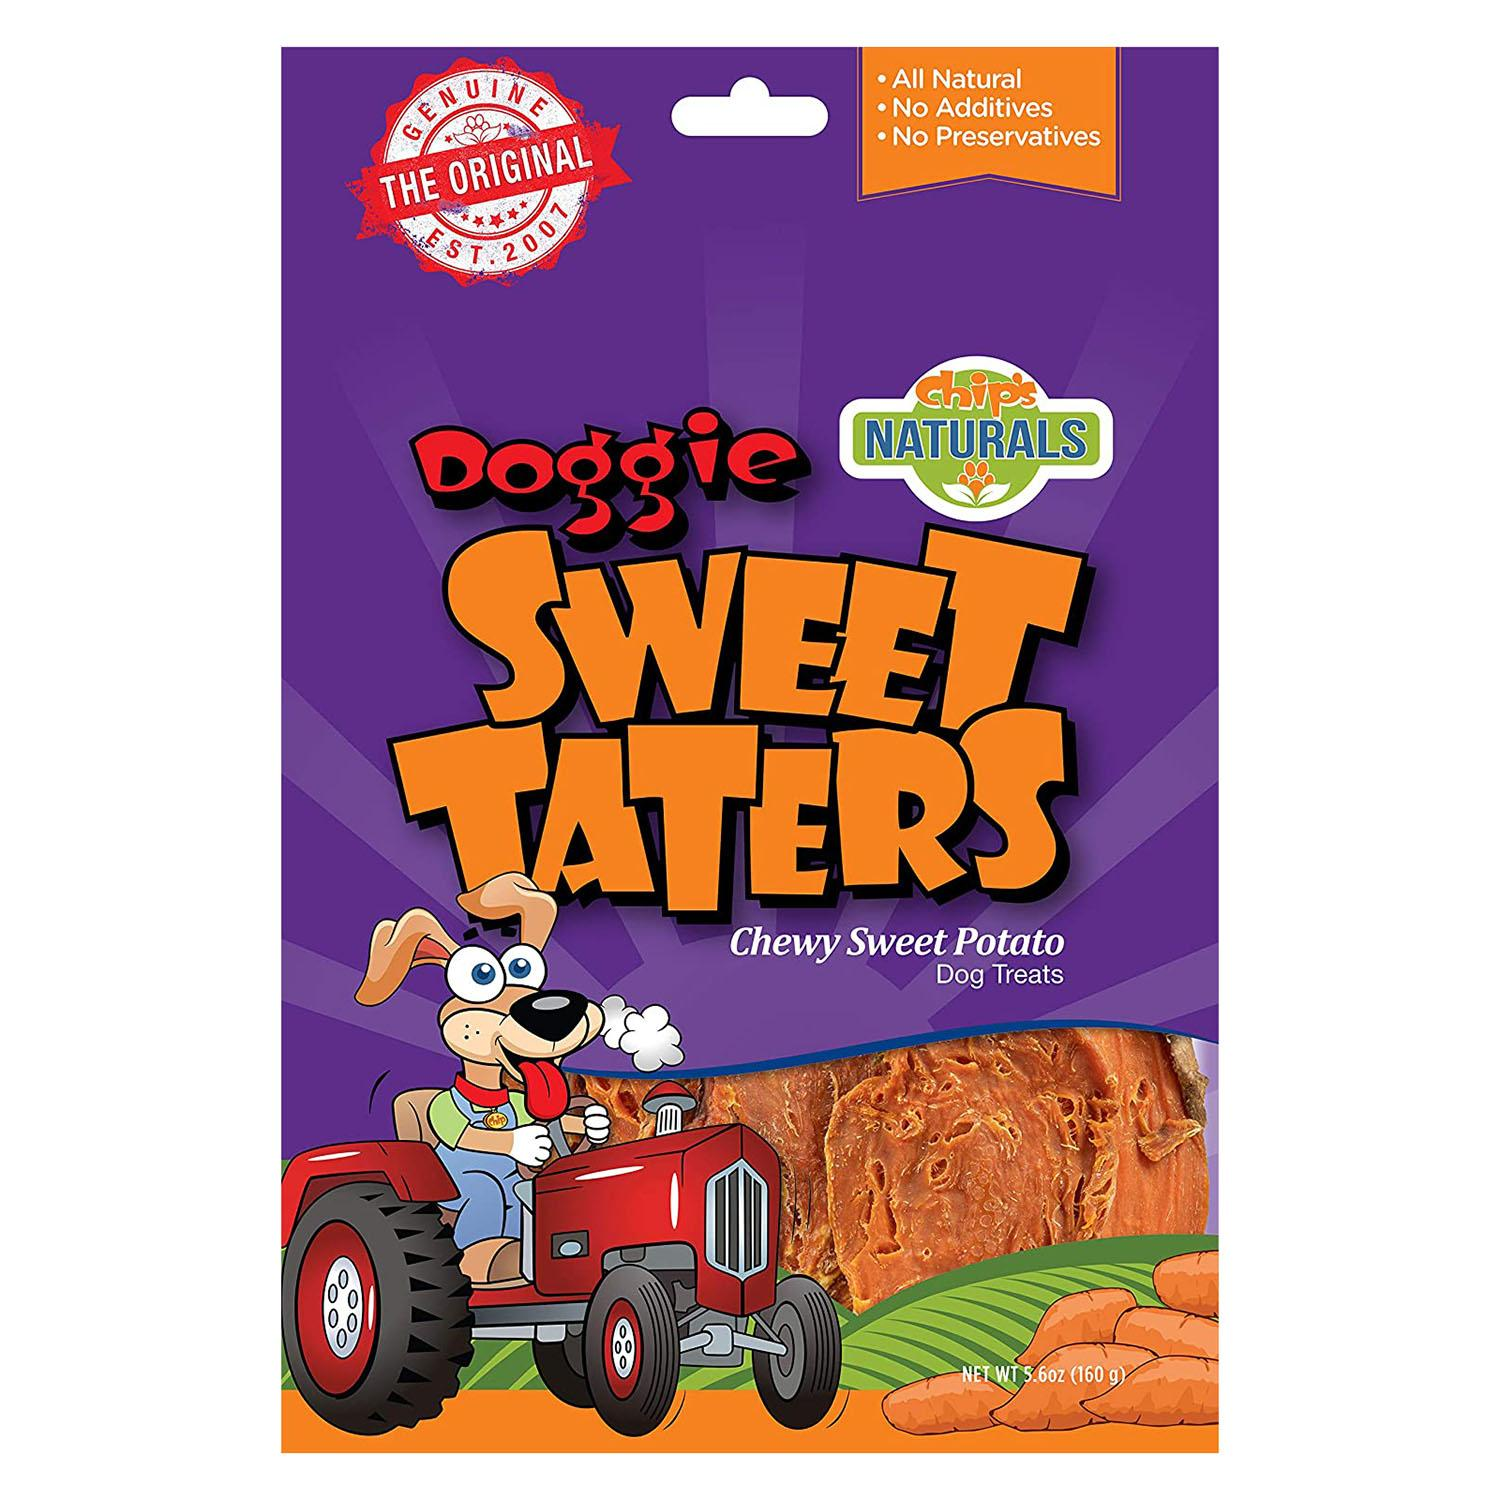 Chip's Naturals Doggie Sweet Taters Dog Treats